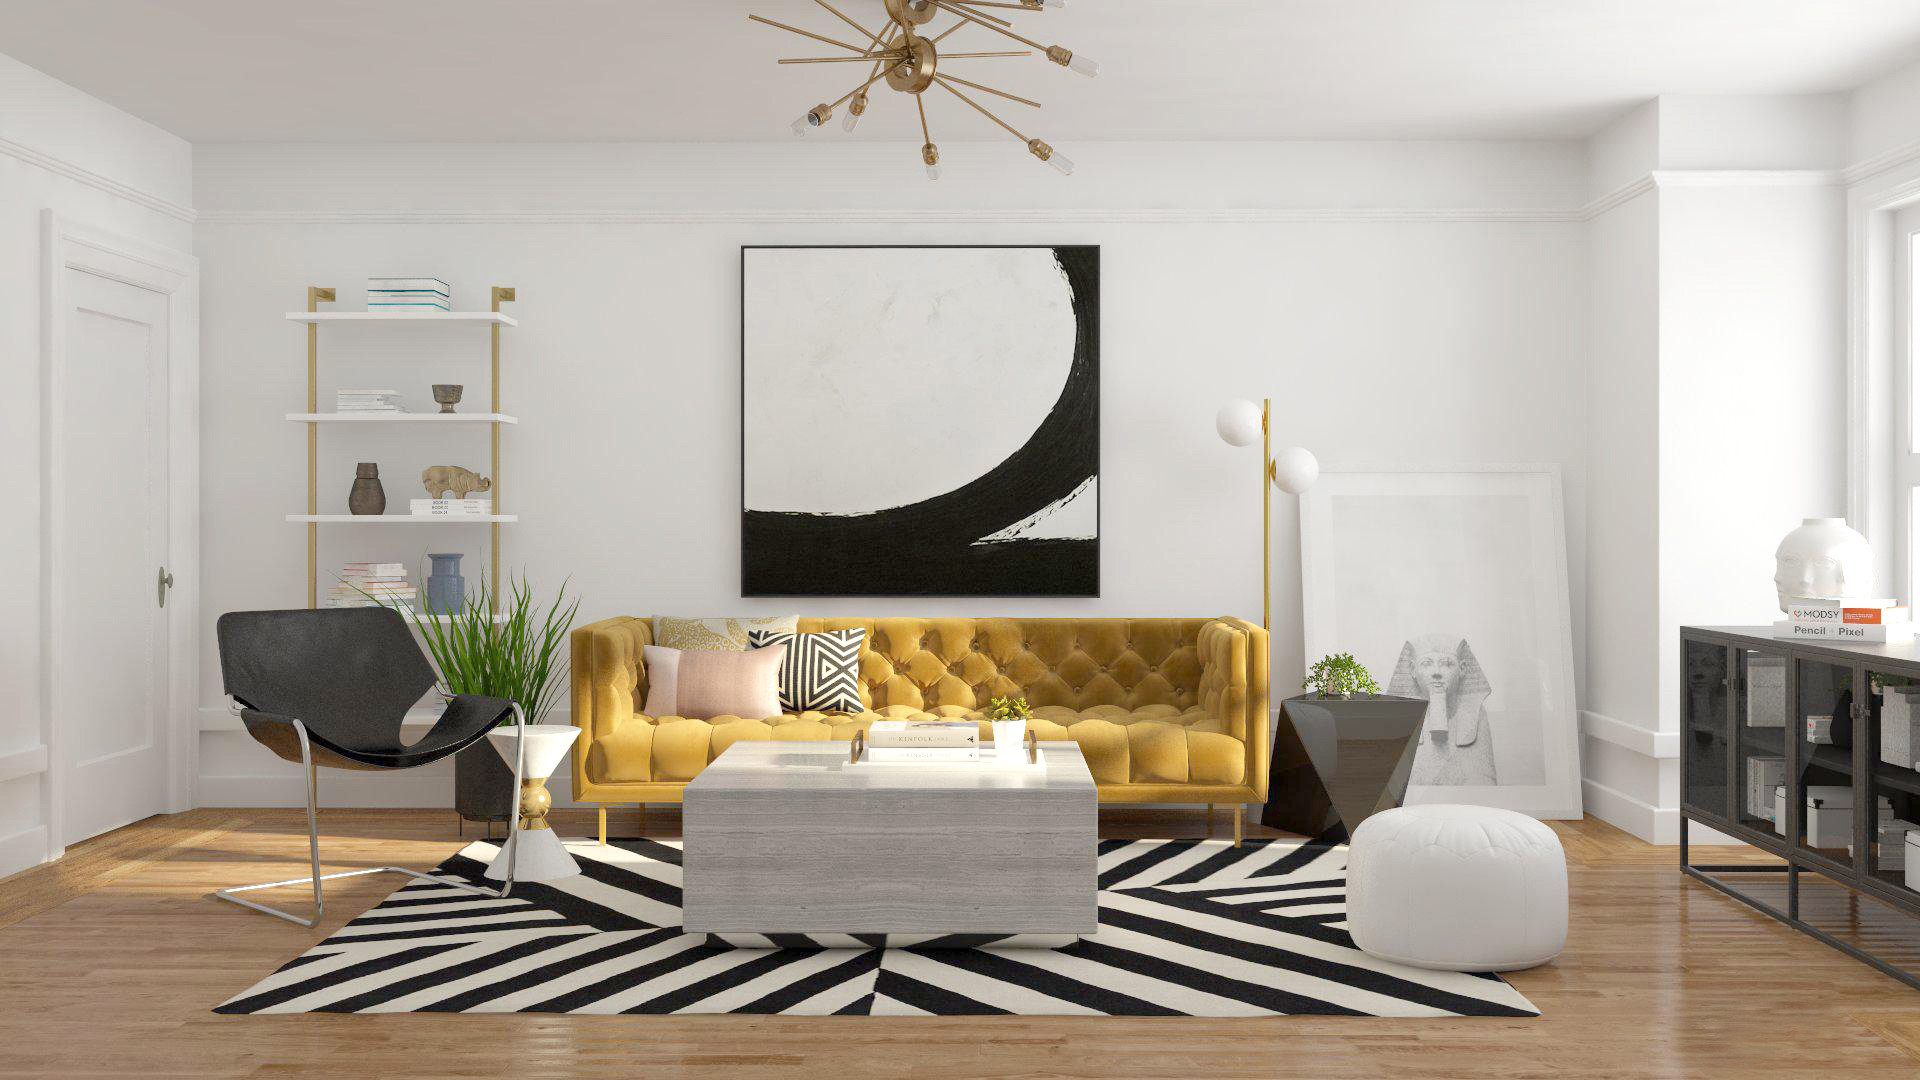 18 Home Decor And Design Trends Well Be Watching In 2018